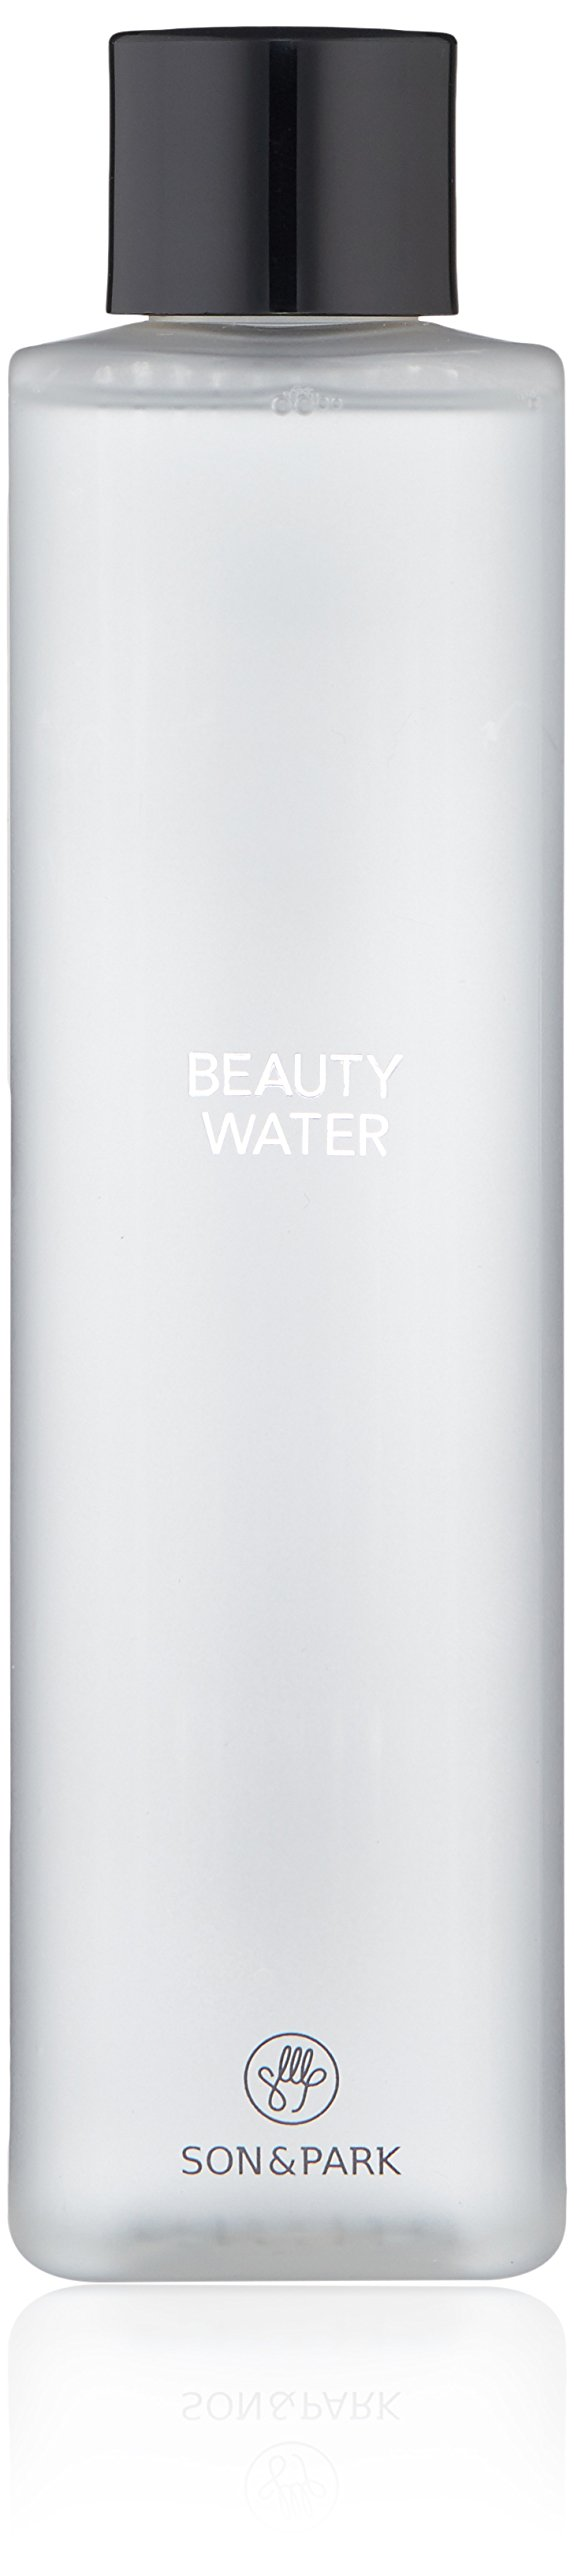 Son & park Beauty Water, 11.49 oz